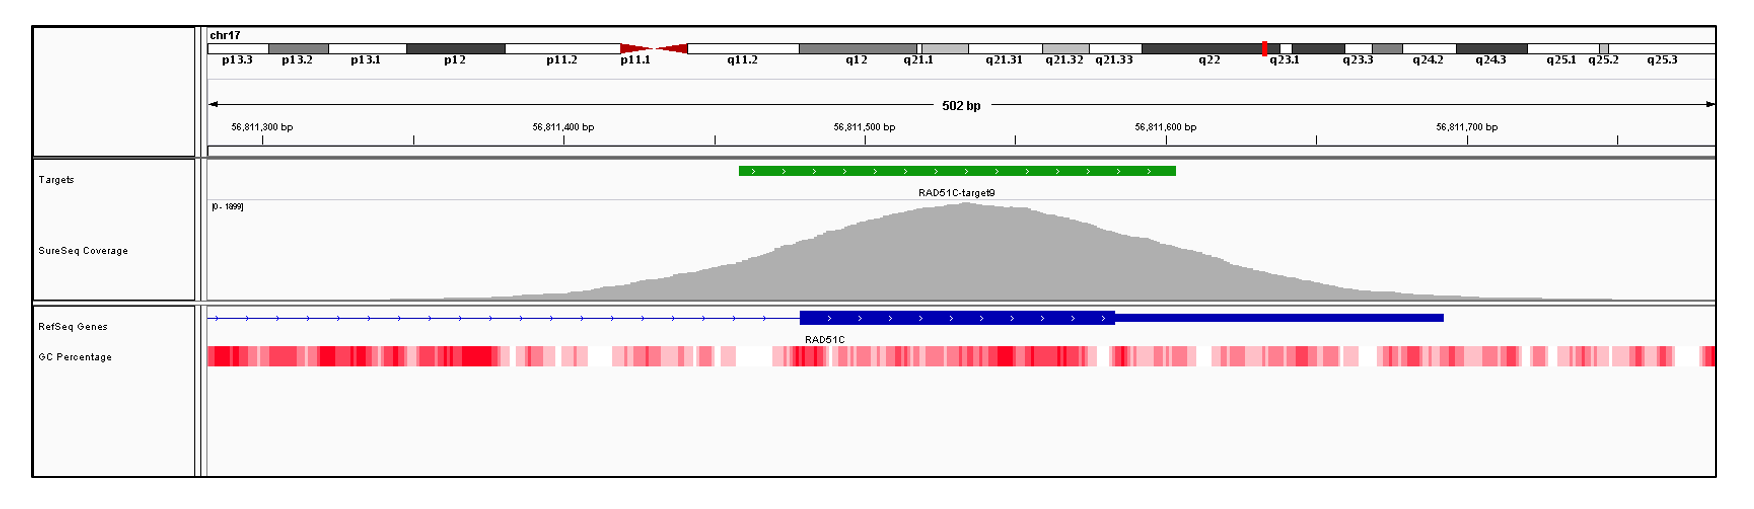 RAD51C Exon 9 (hg19 chr17:56811479-56811692). Depth of coverage per base (grey). Targeted region (green). Gene coding region as defined by RefSeq (blue). GC percentage (red). Image